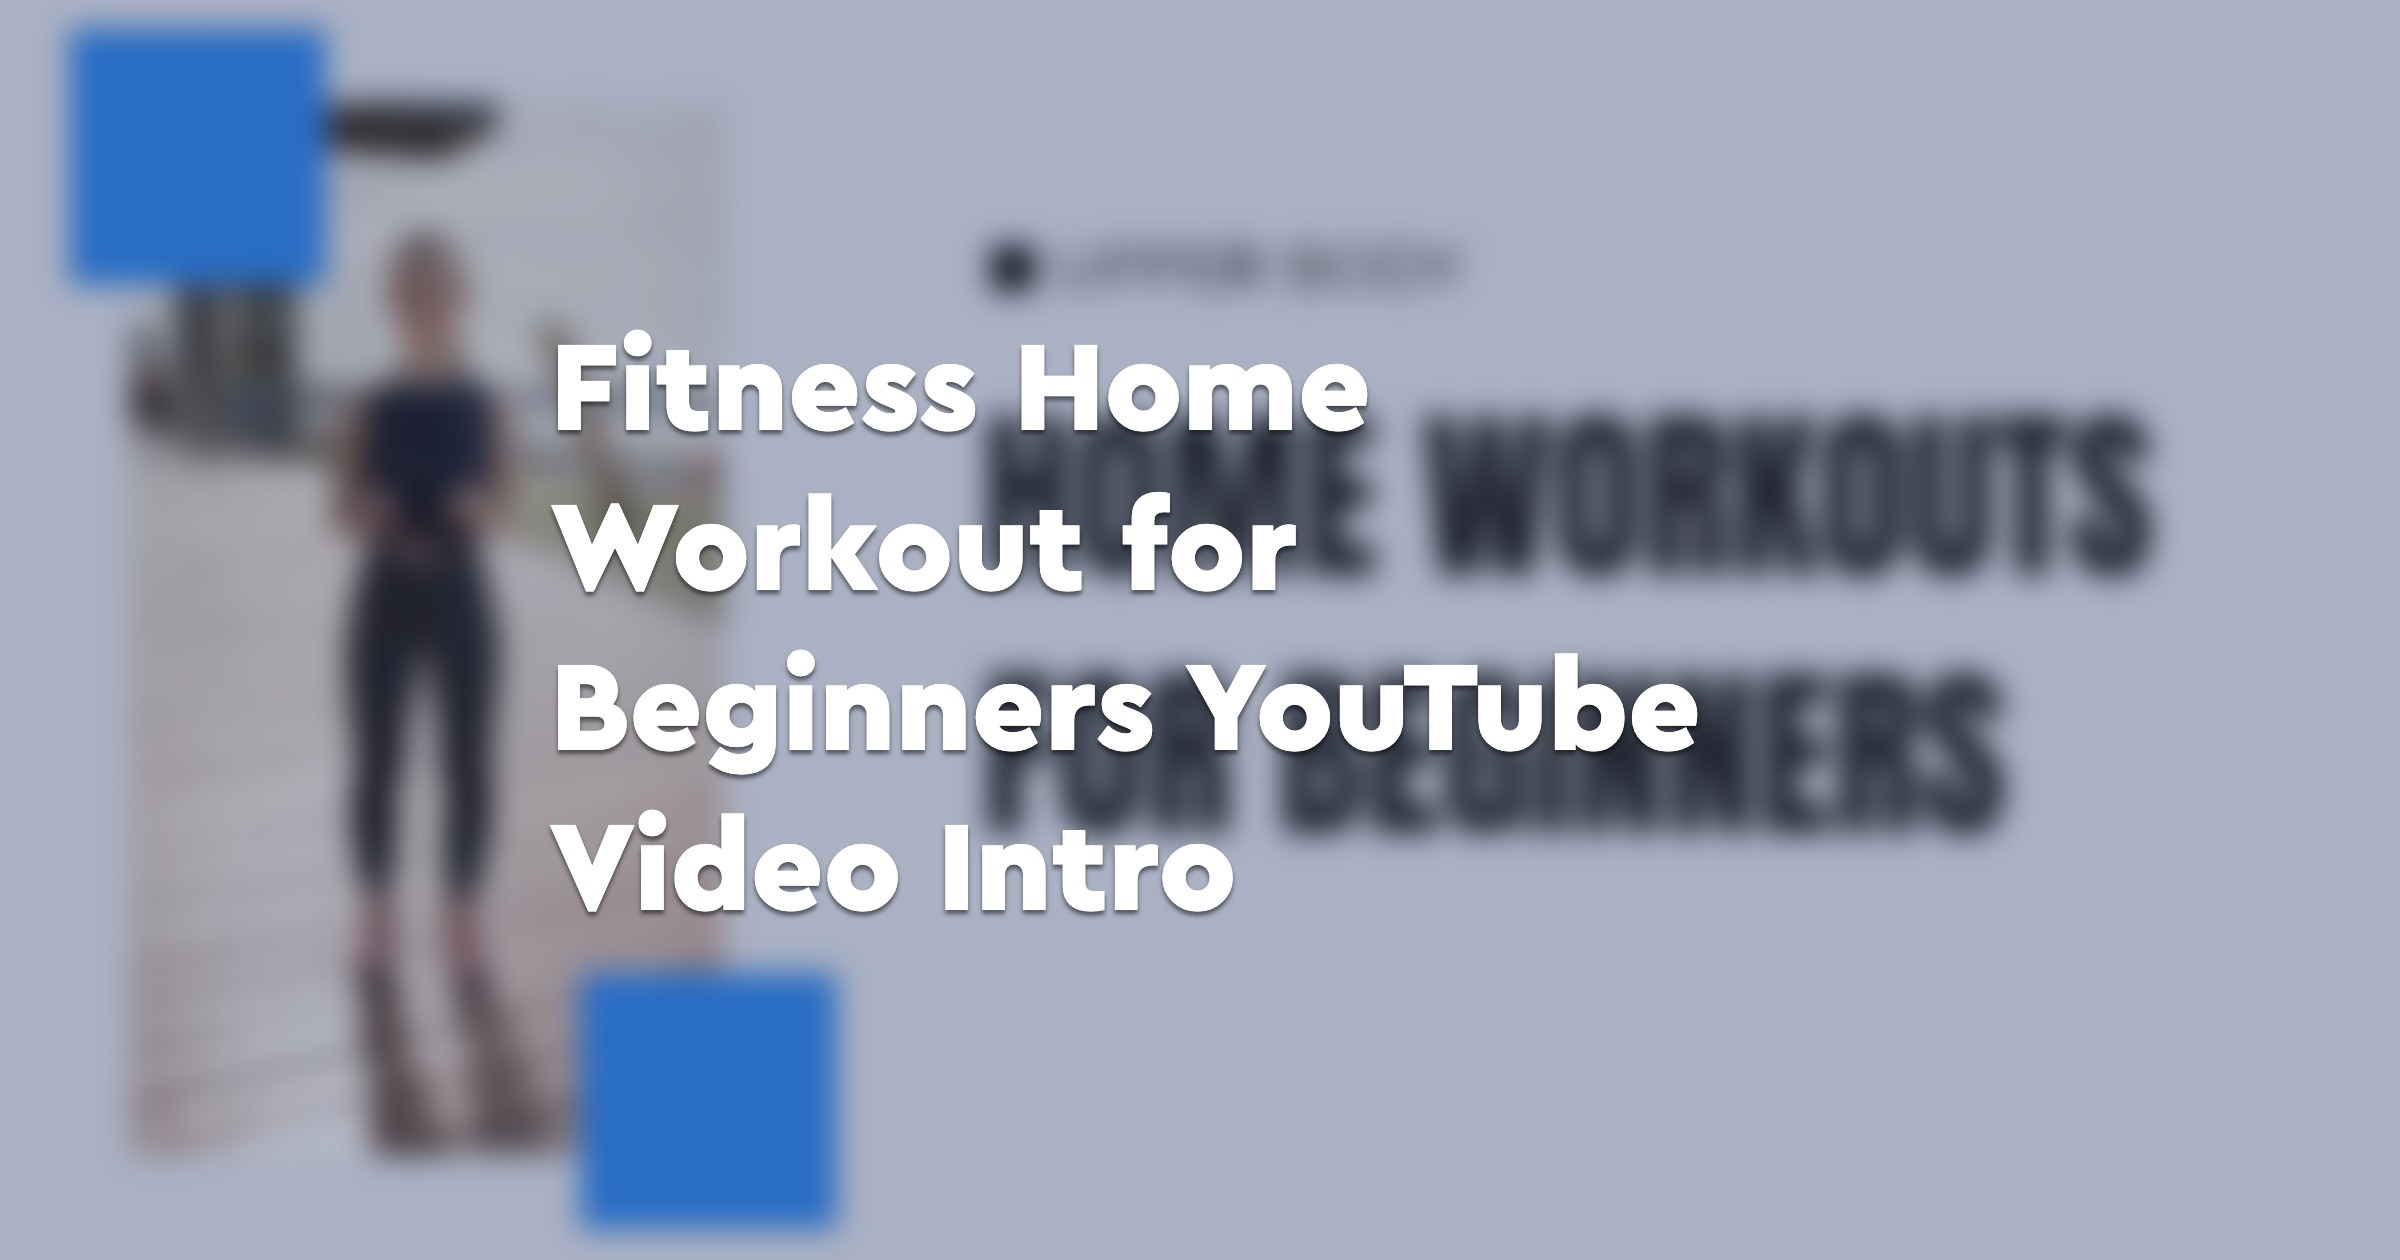 Fitness Home Workout for Beginners YouTube Video Intro